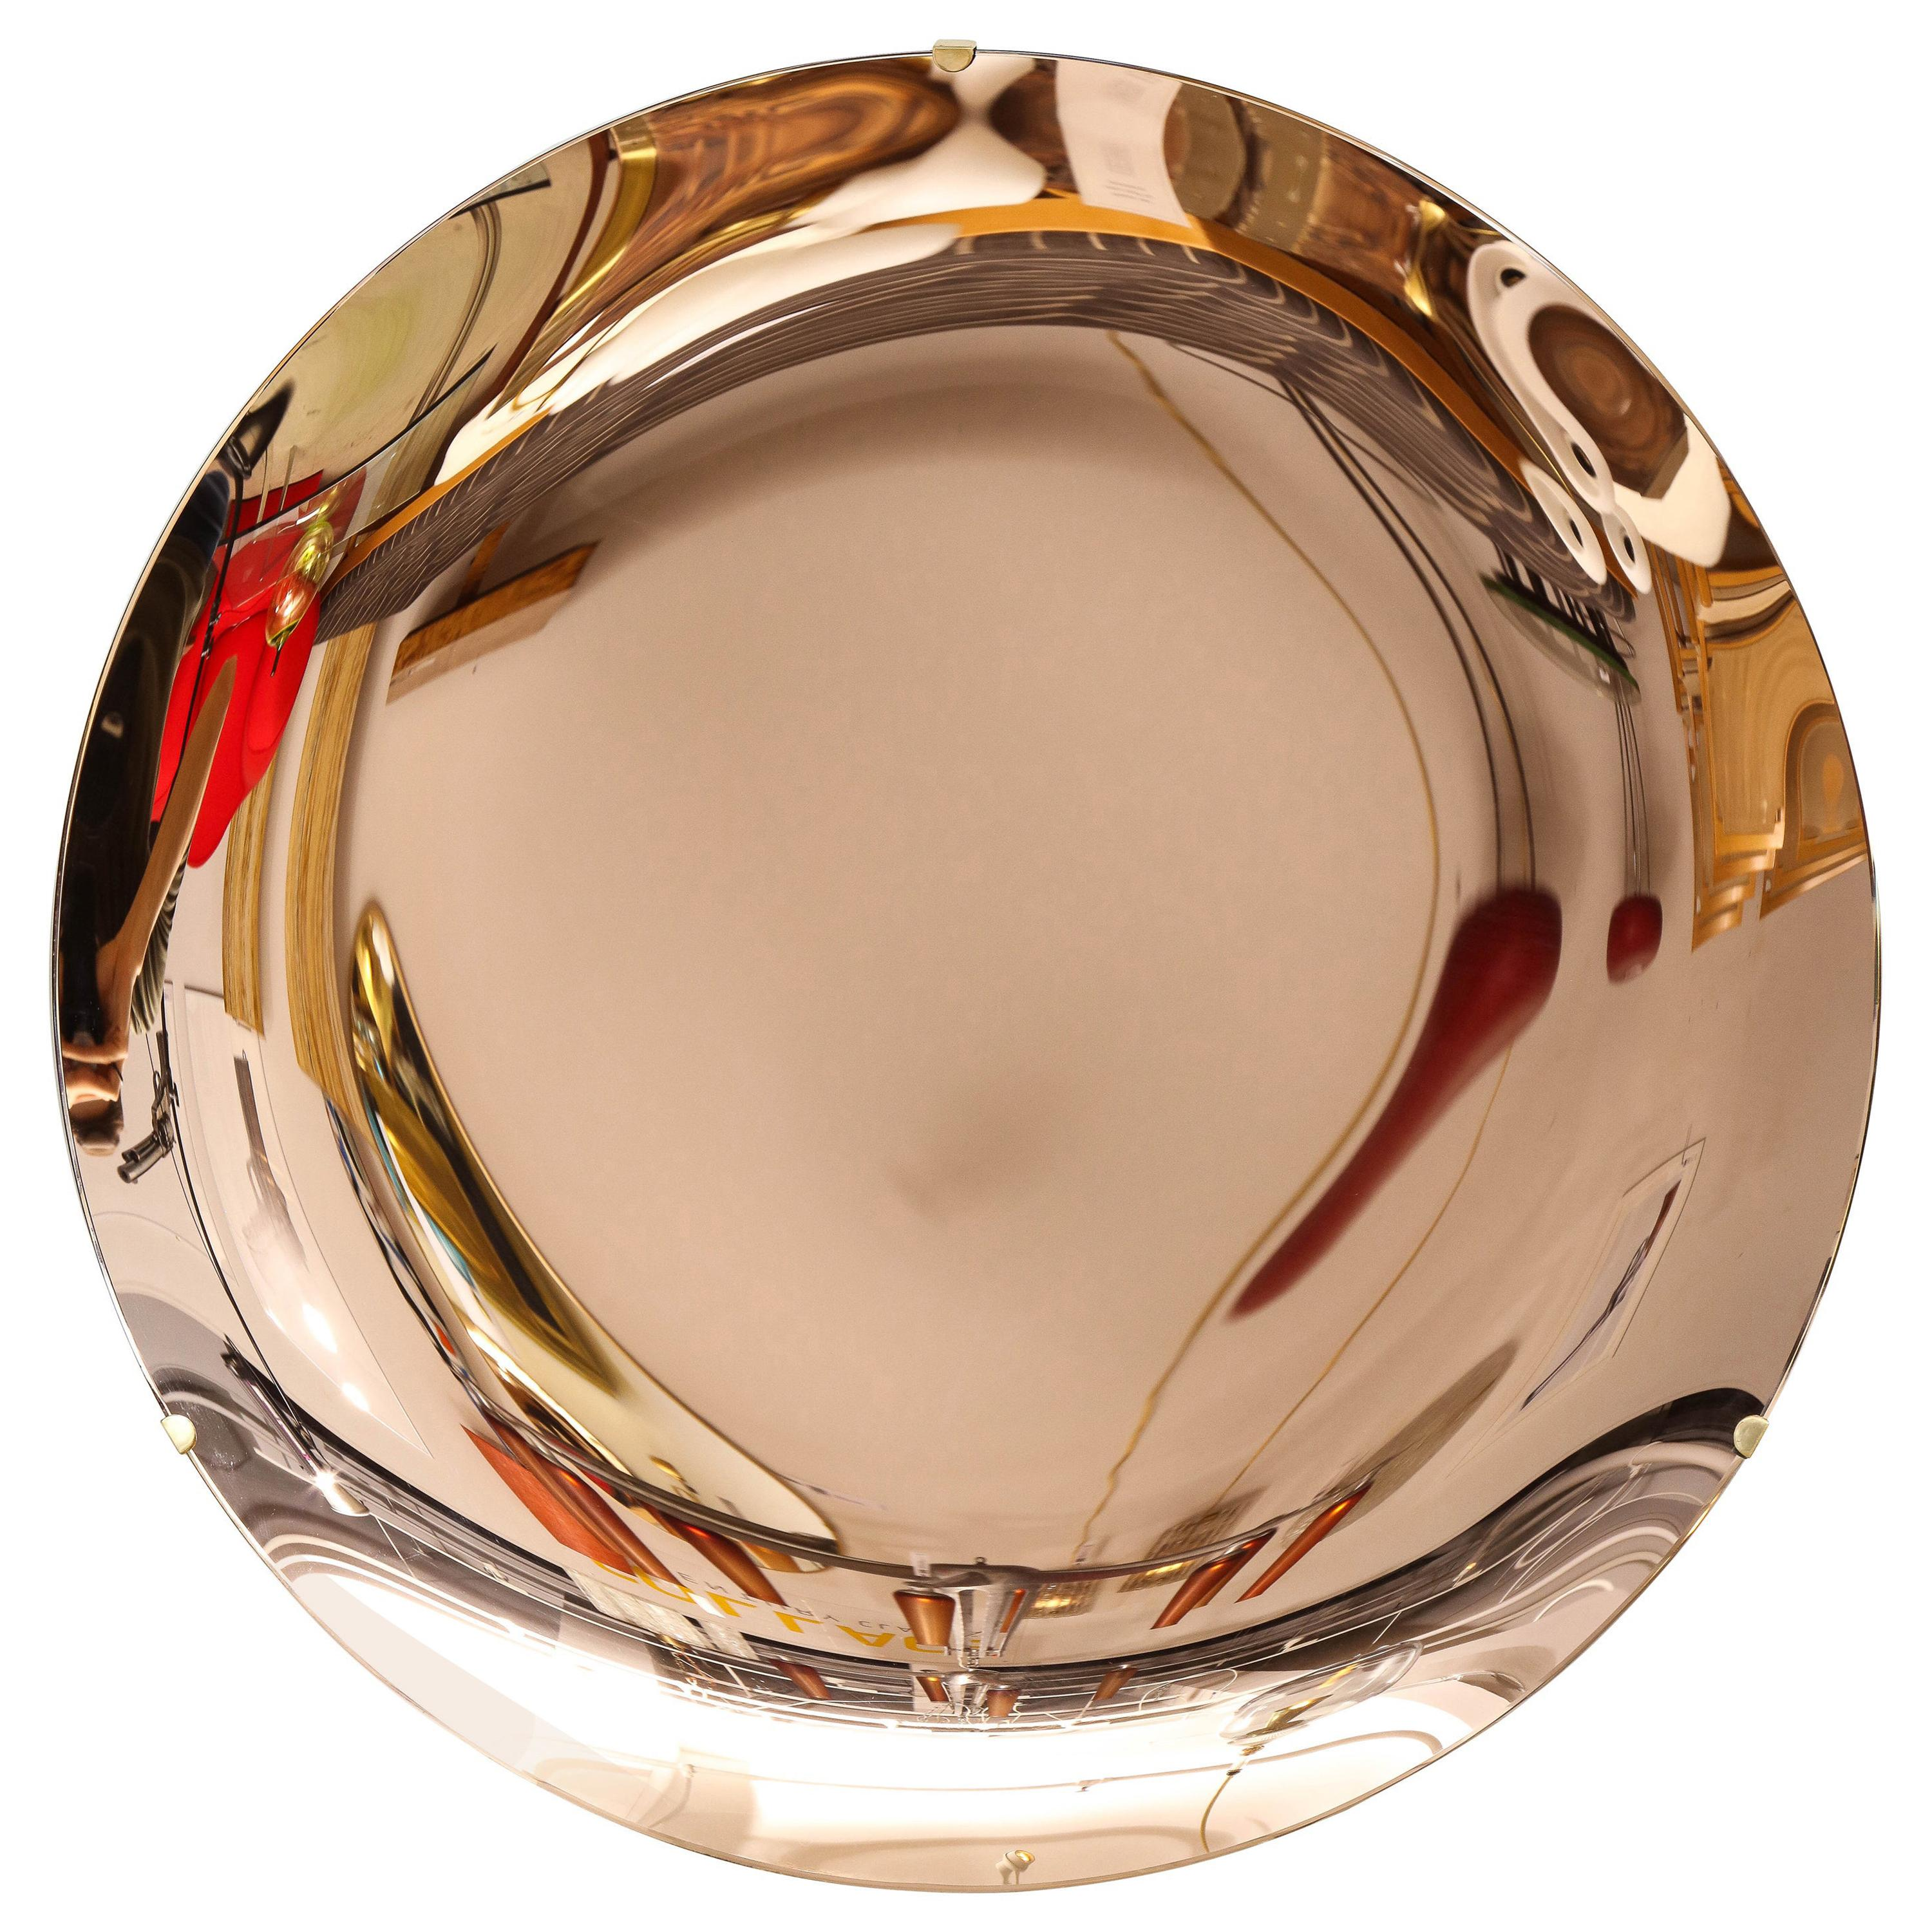 """Large Sculptural Round Concave Rose """"Rosa"""" Mirror or Wall Art, Italy, 2021"""